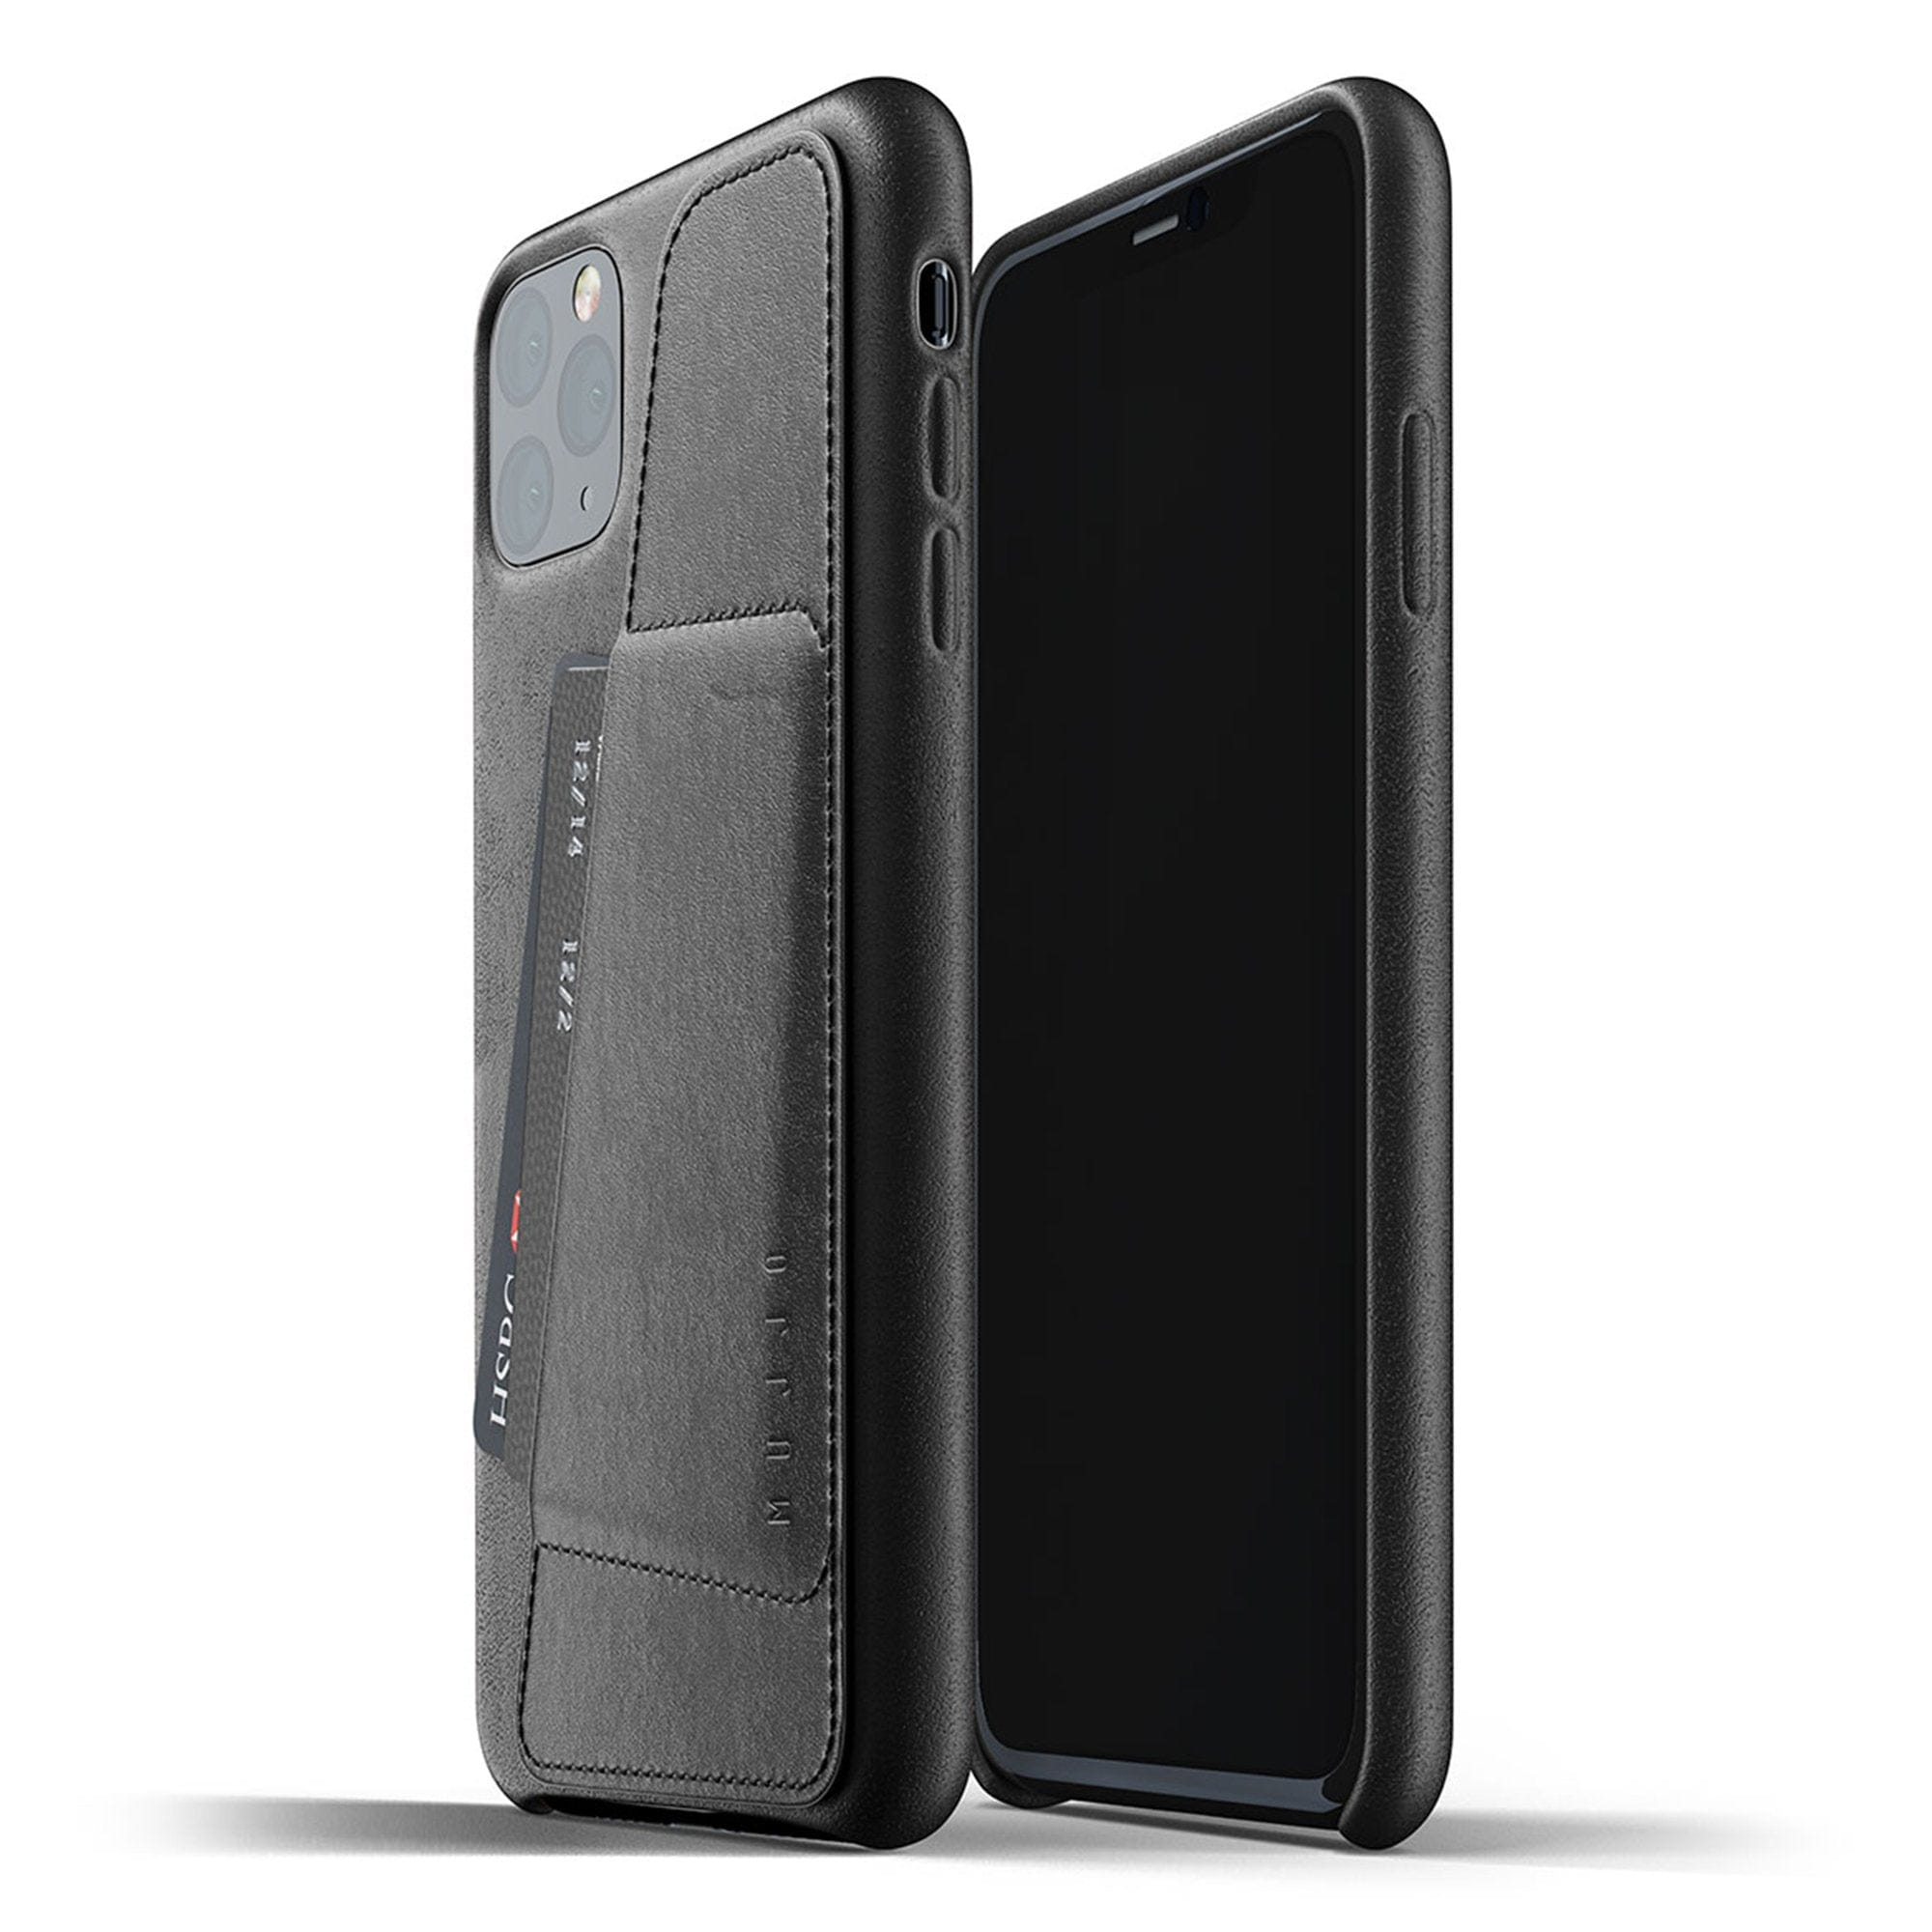 Mujjo Full Leather Wallet case for iPhone 11 Pro Max in Black